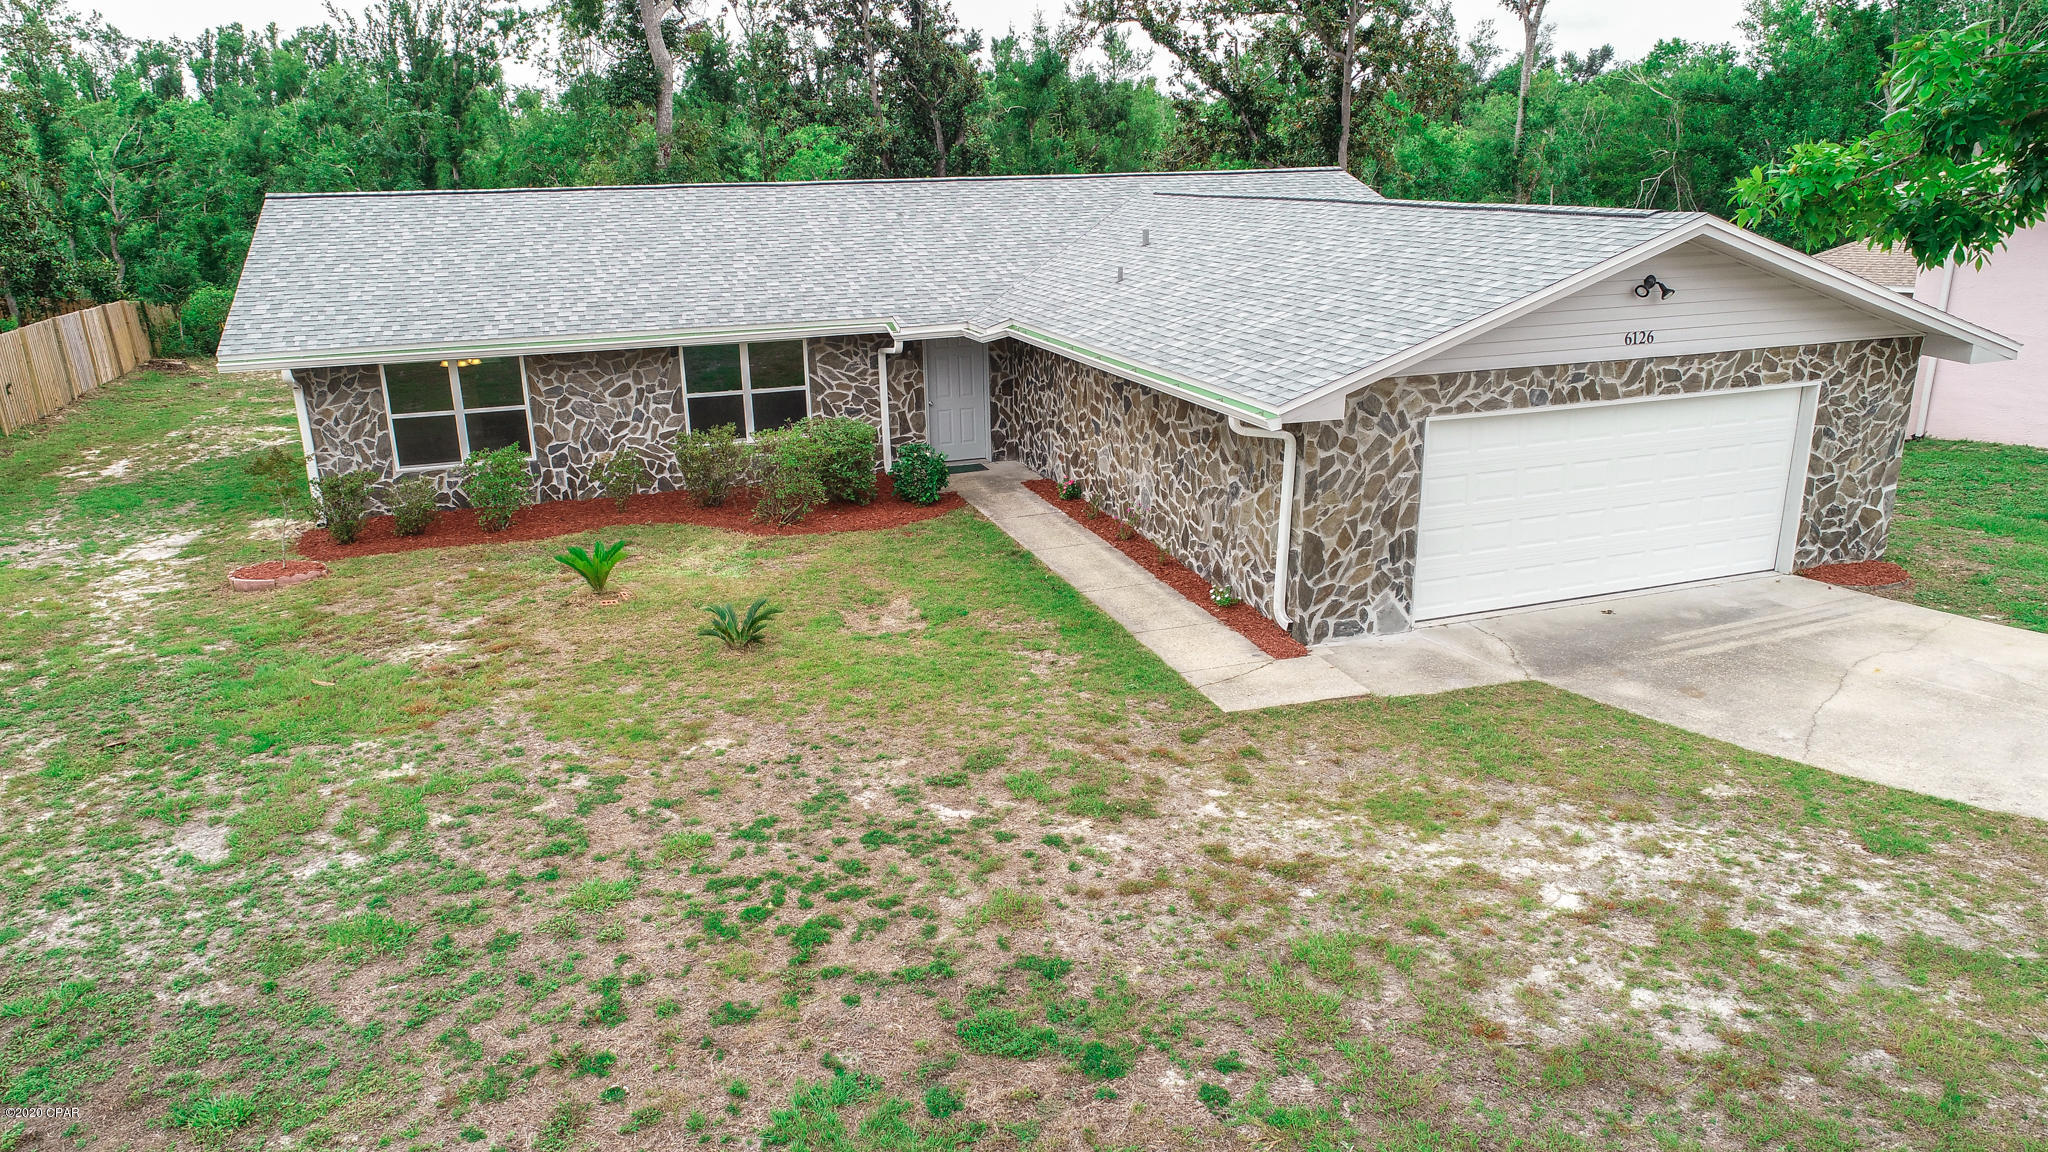 Photo of 6126 Imperial Drive Panama City FL 32404